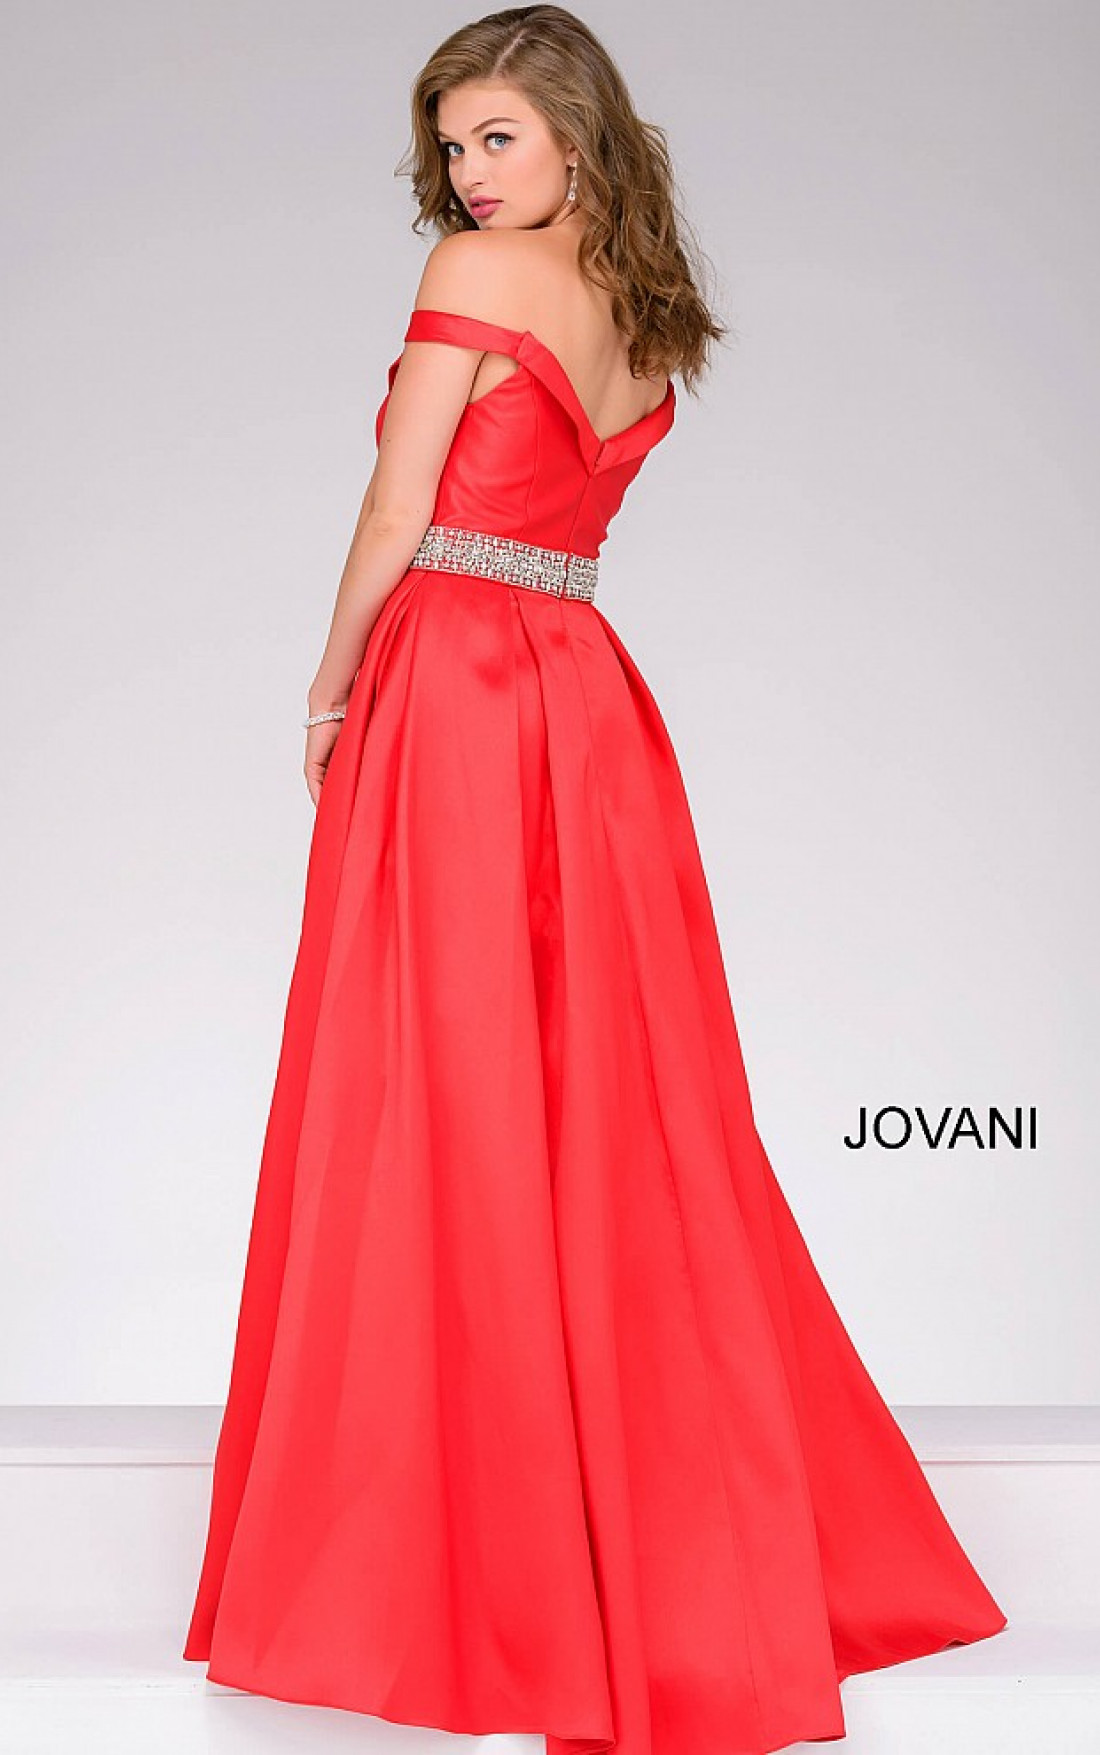 Jovani - Red Off the Shoulder Ballgown (45135)